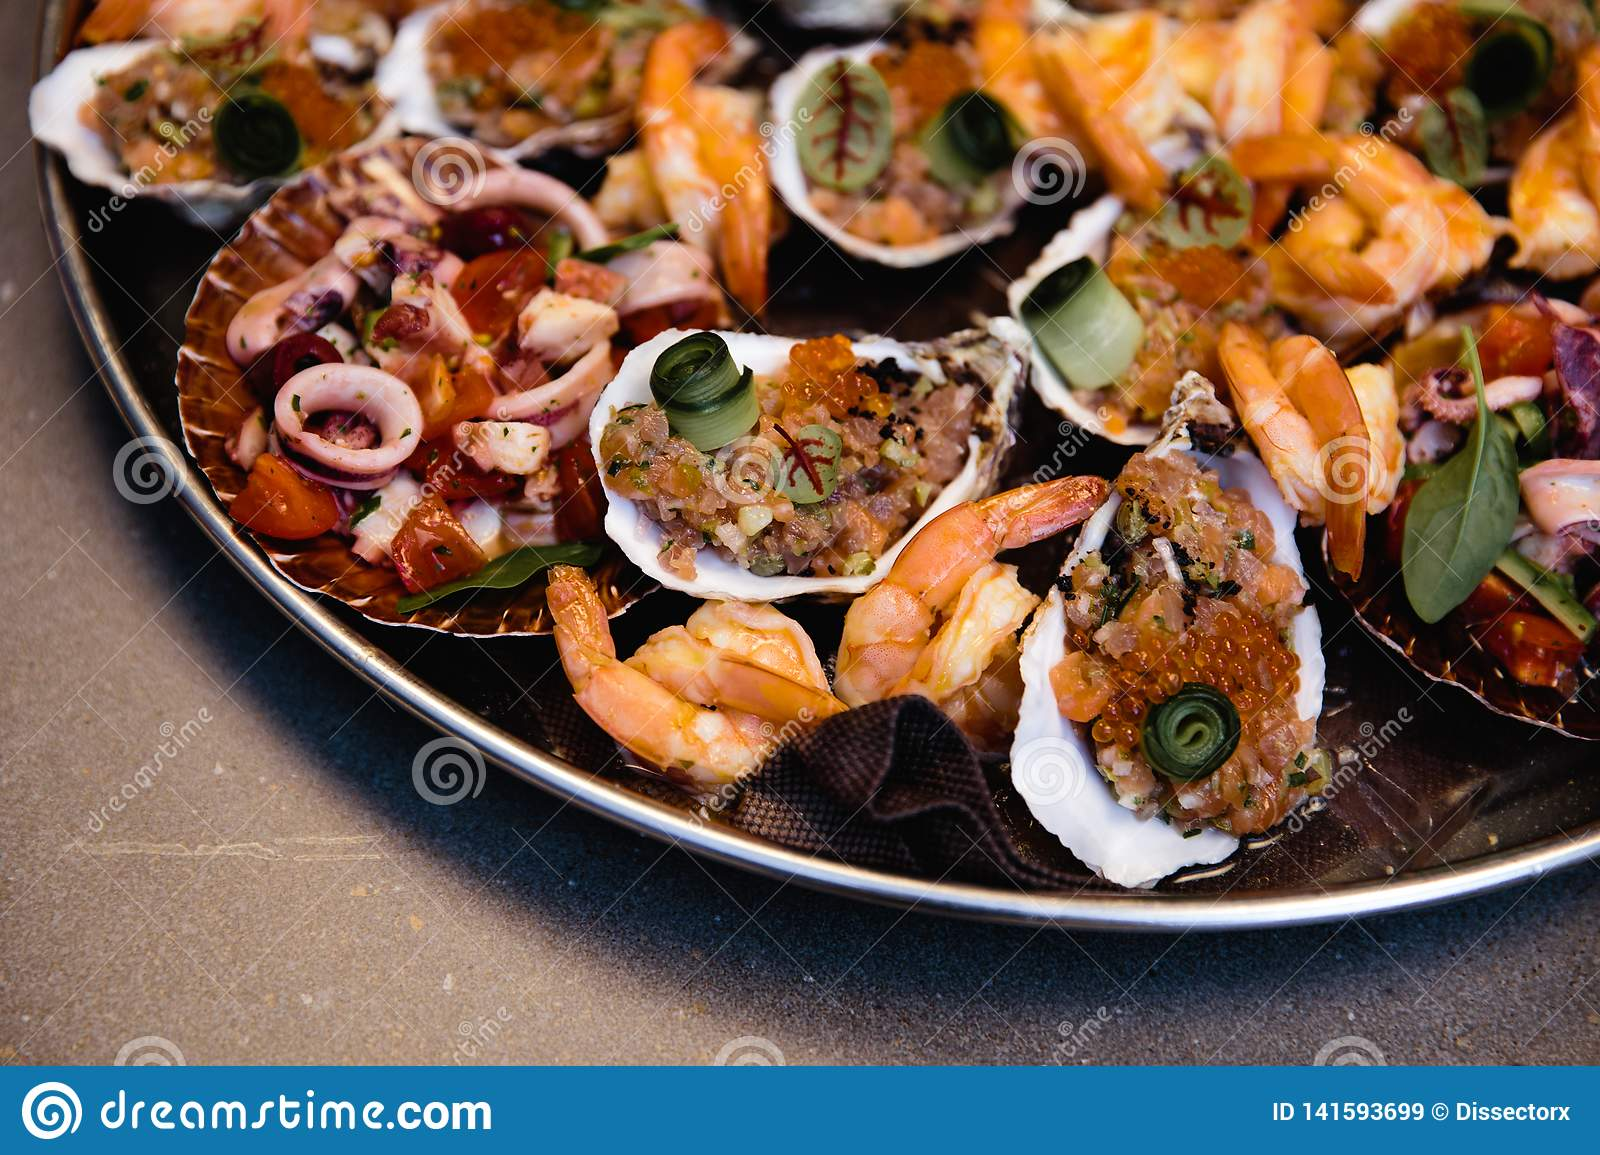 Assorted seafood, mussels, squid, scallops, salmon fillet and tiger shrimps with garlic creamy sauce, parmesan cheese